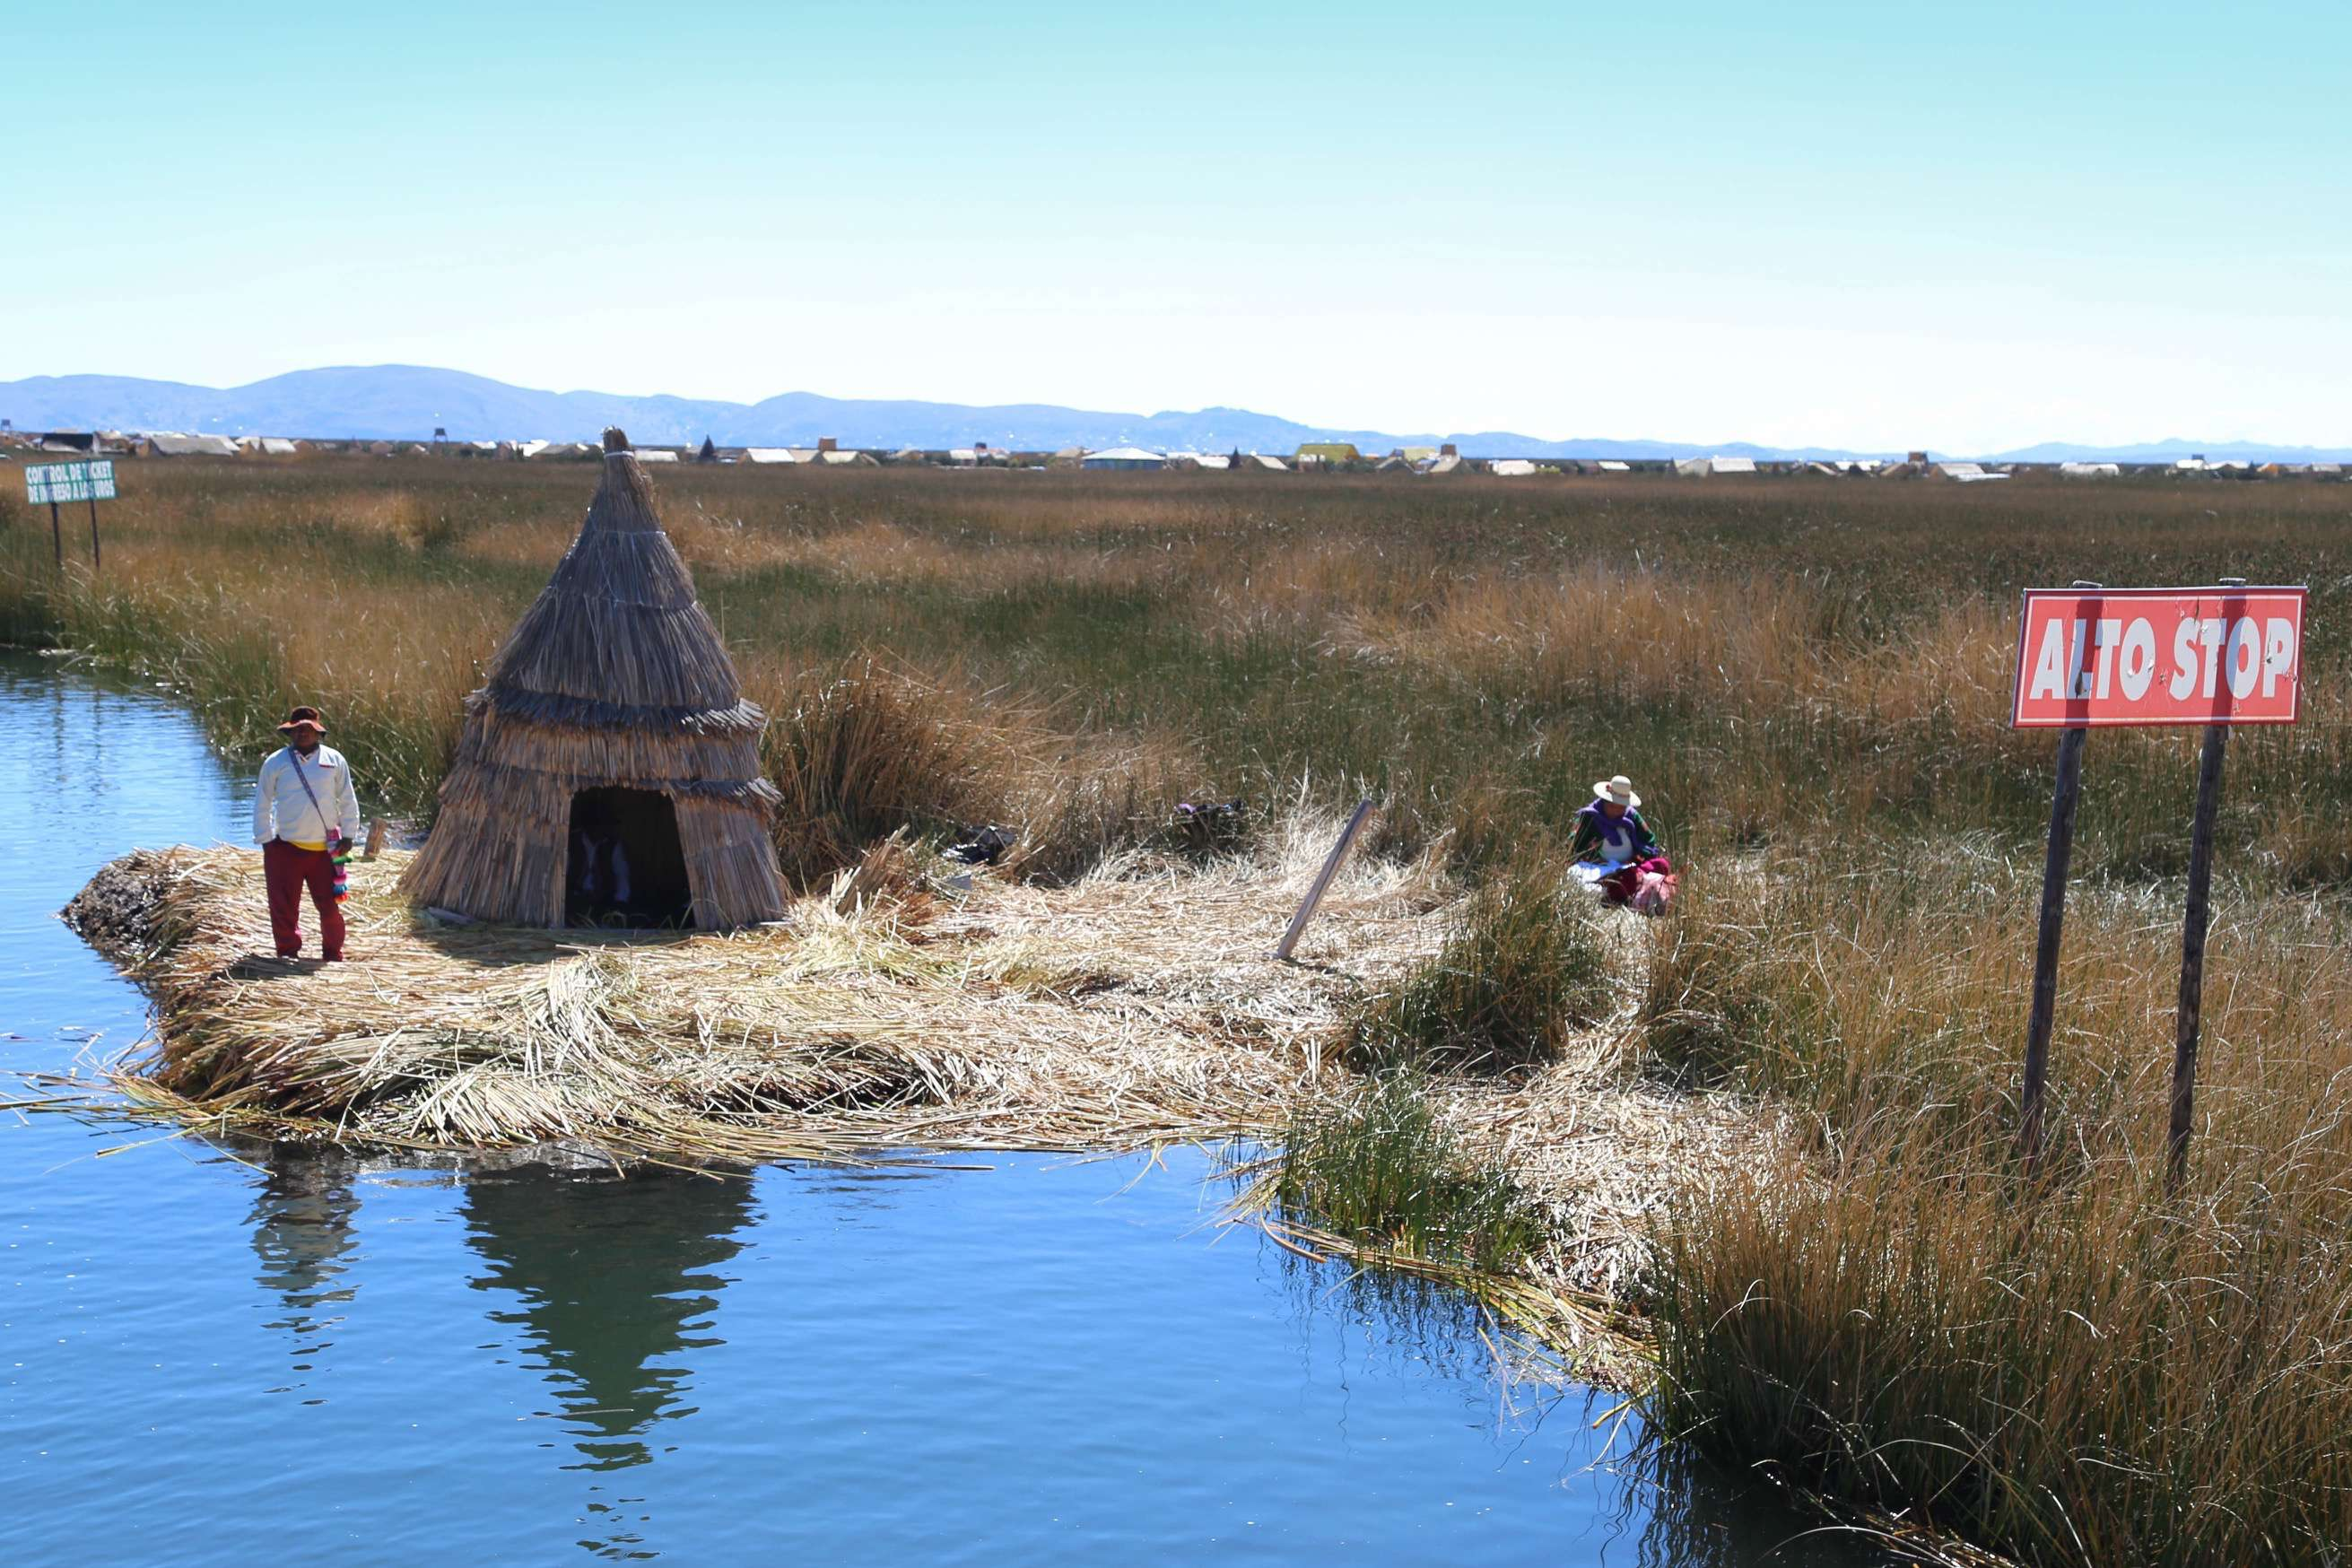 A traffic control station keeps tabs on the boats visiting the floating islands of Lake Titicaca.